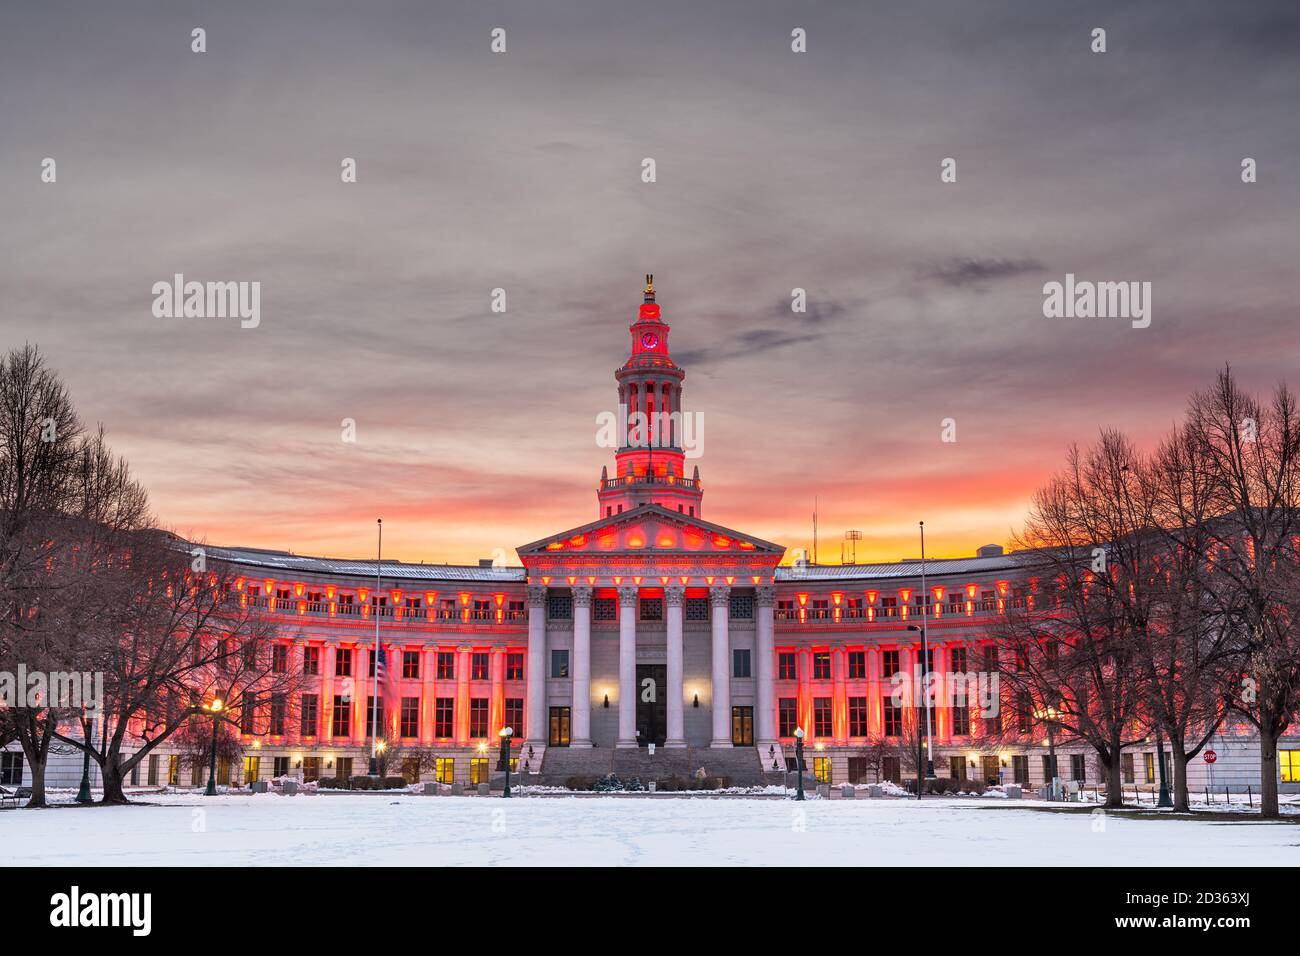 Denver, Colorado, USA city and county building at dusk in winter. Stock Photo